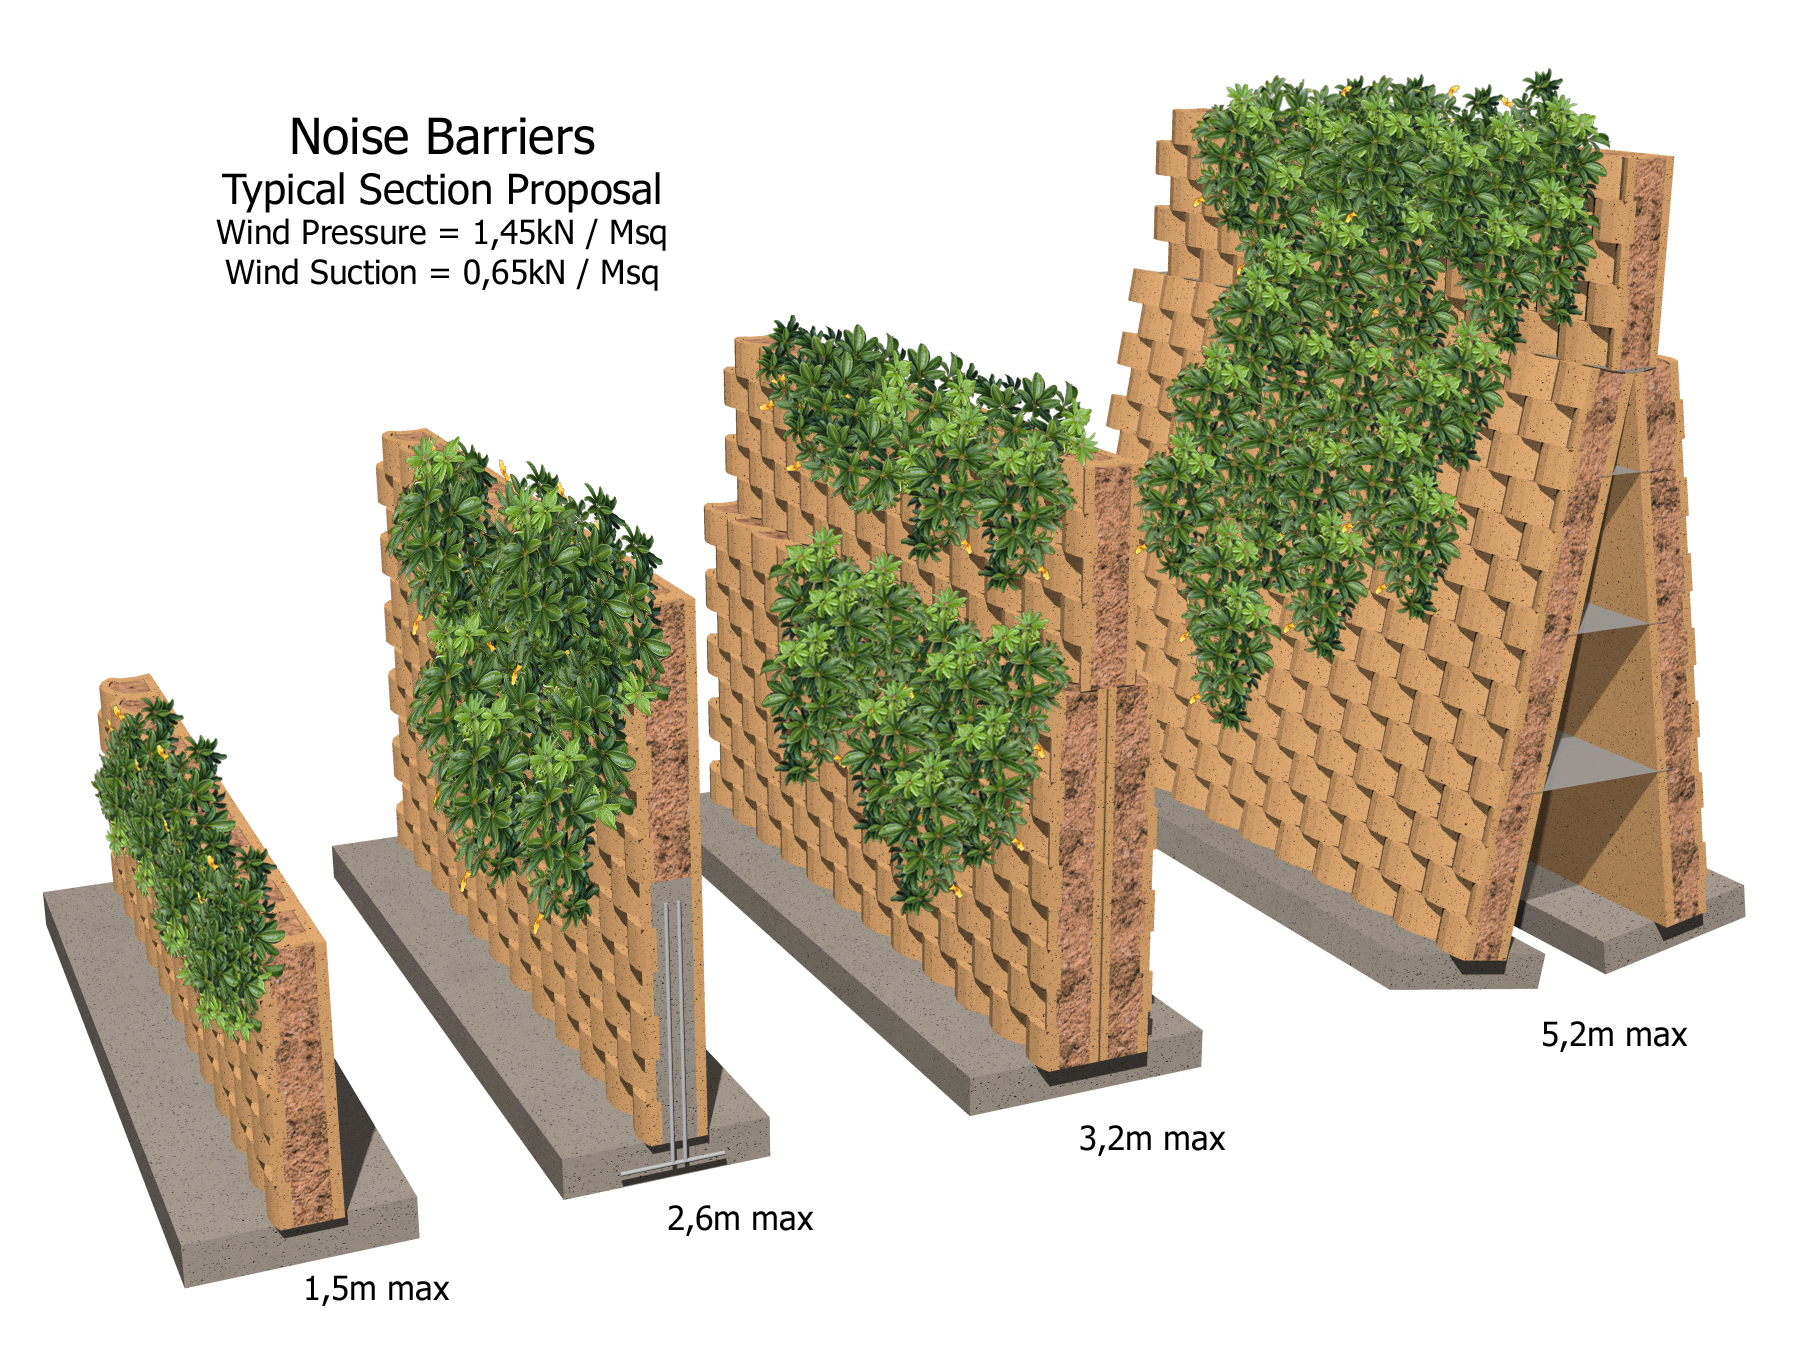 Other design options for noise barriers with Terraforce blocks